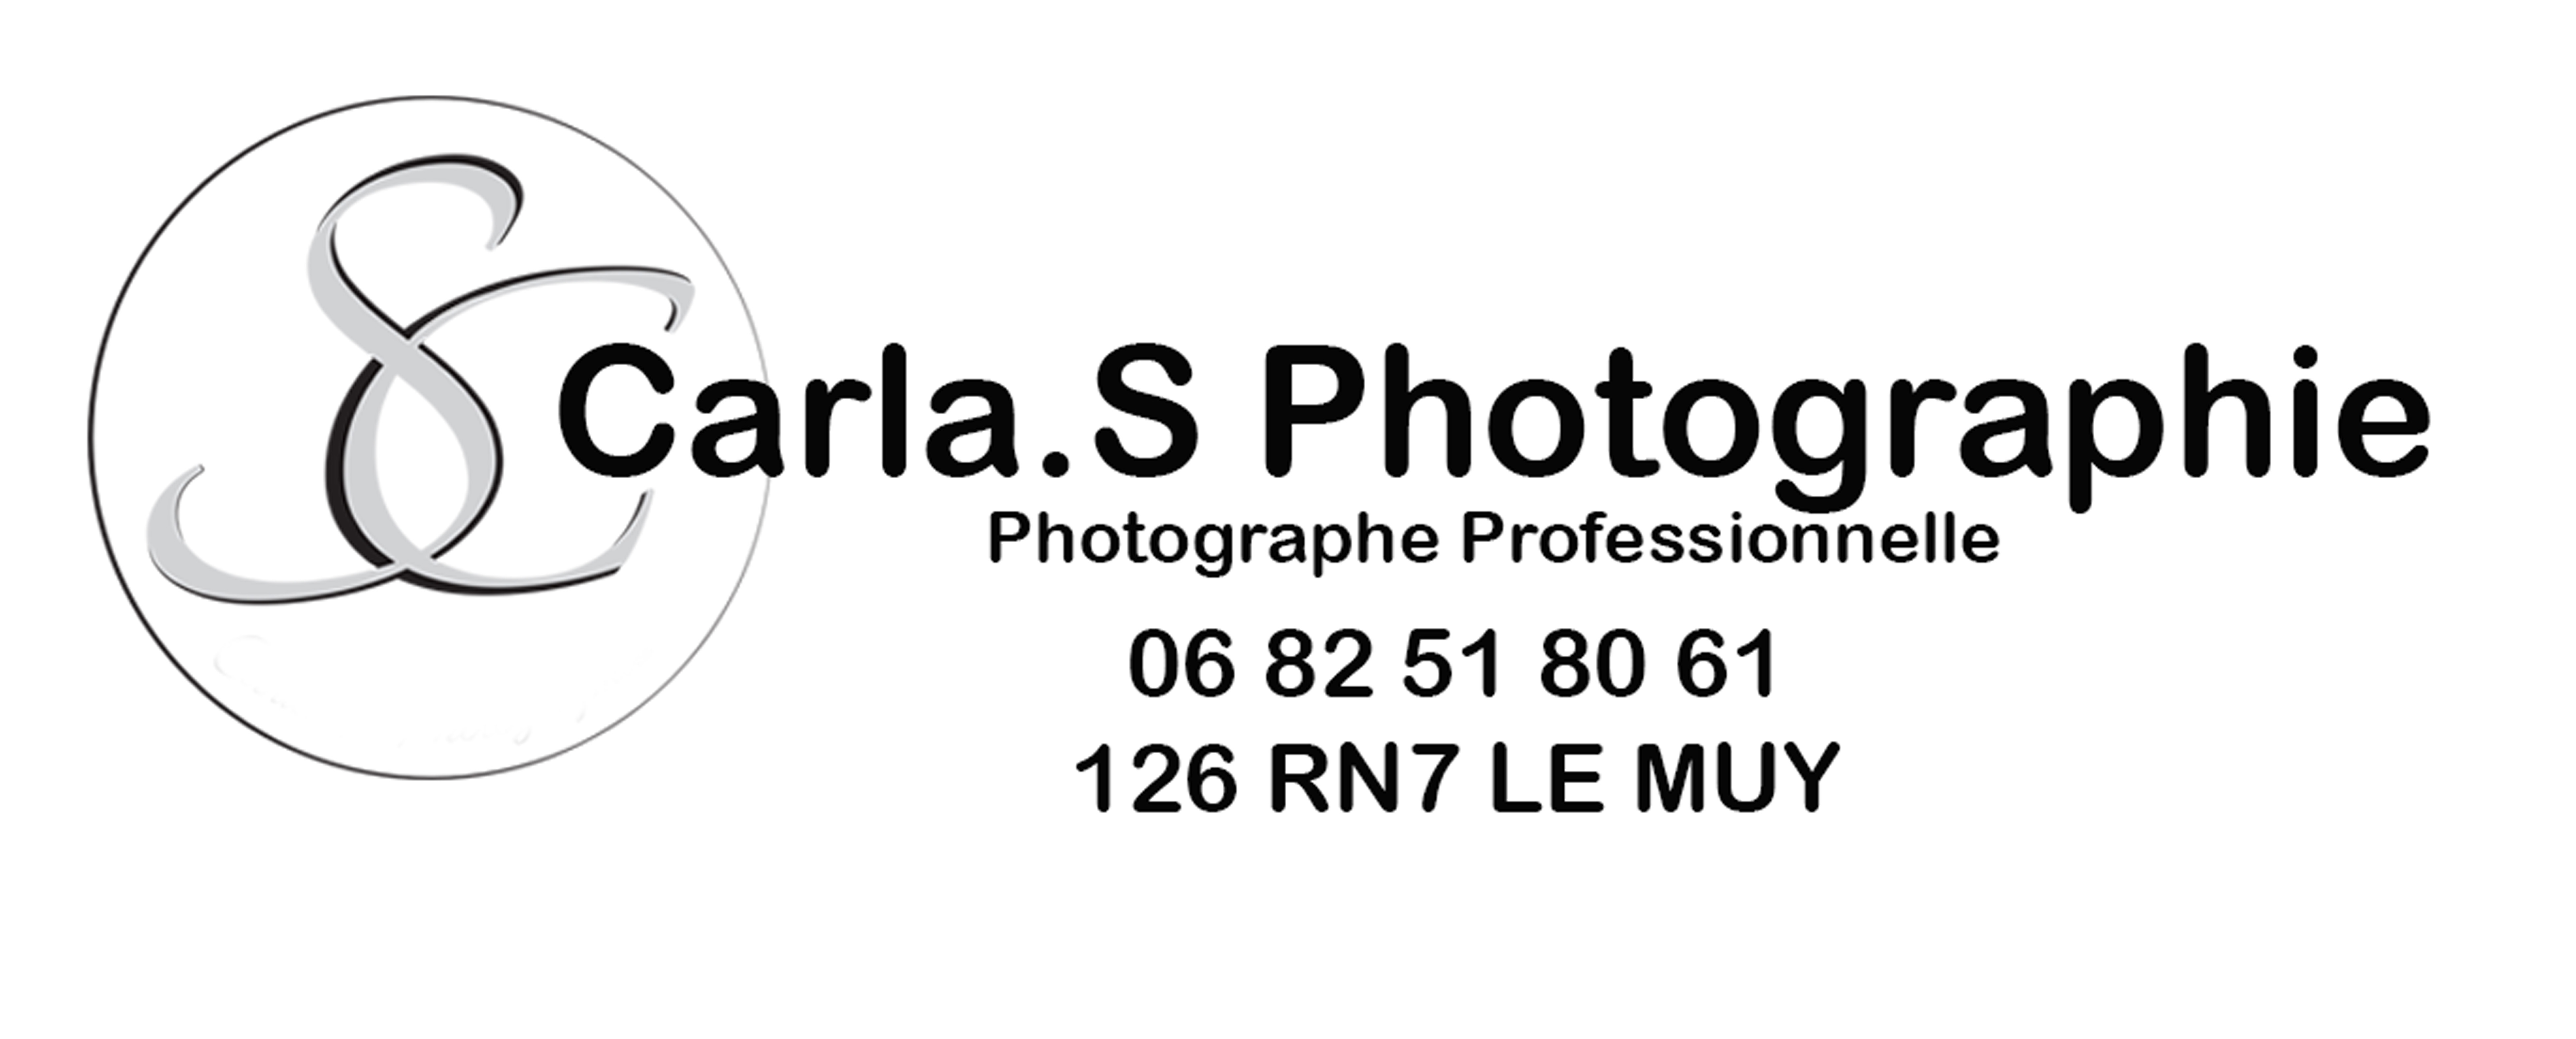 CARLA'S PHOTOGRAPHIE